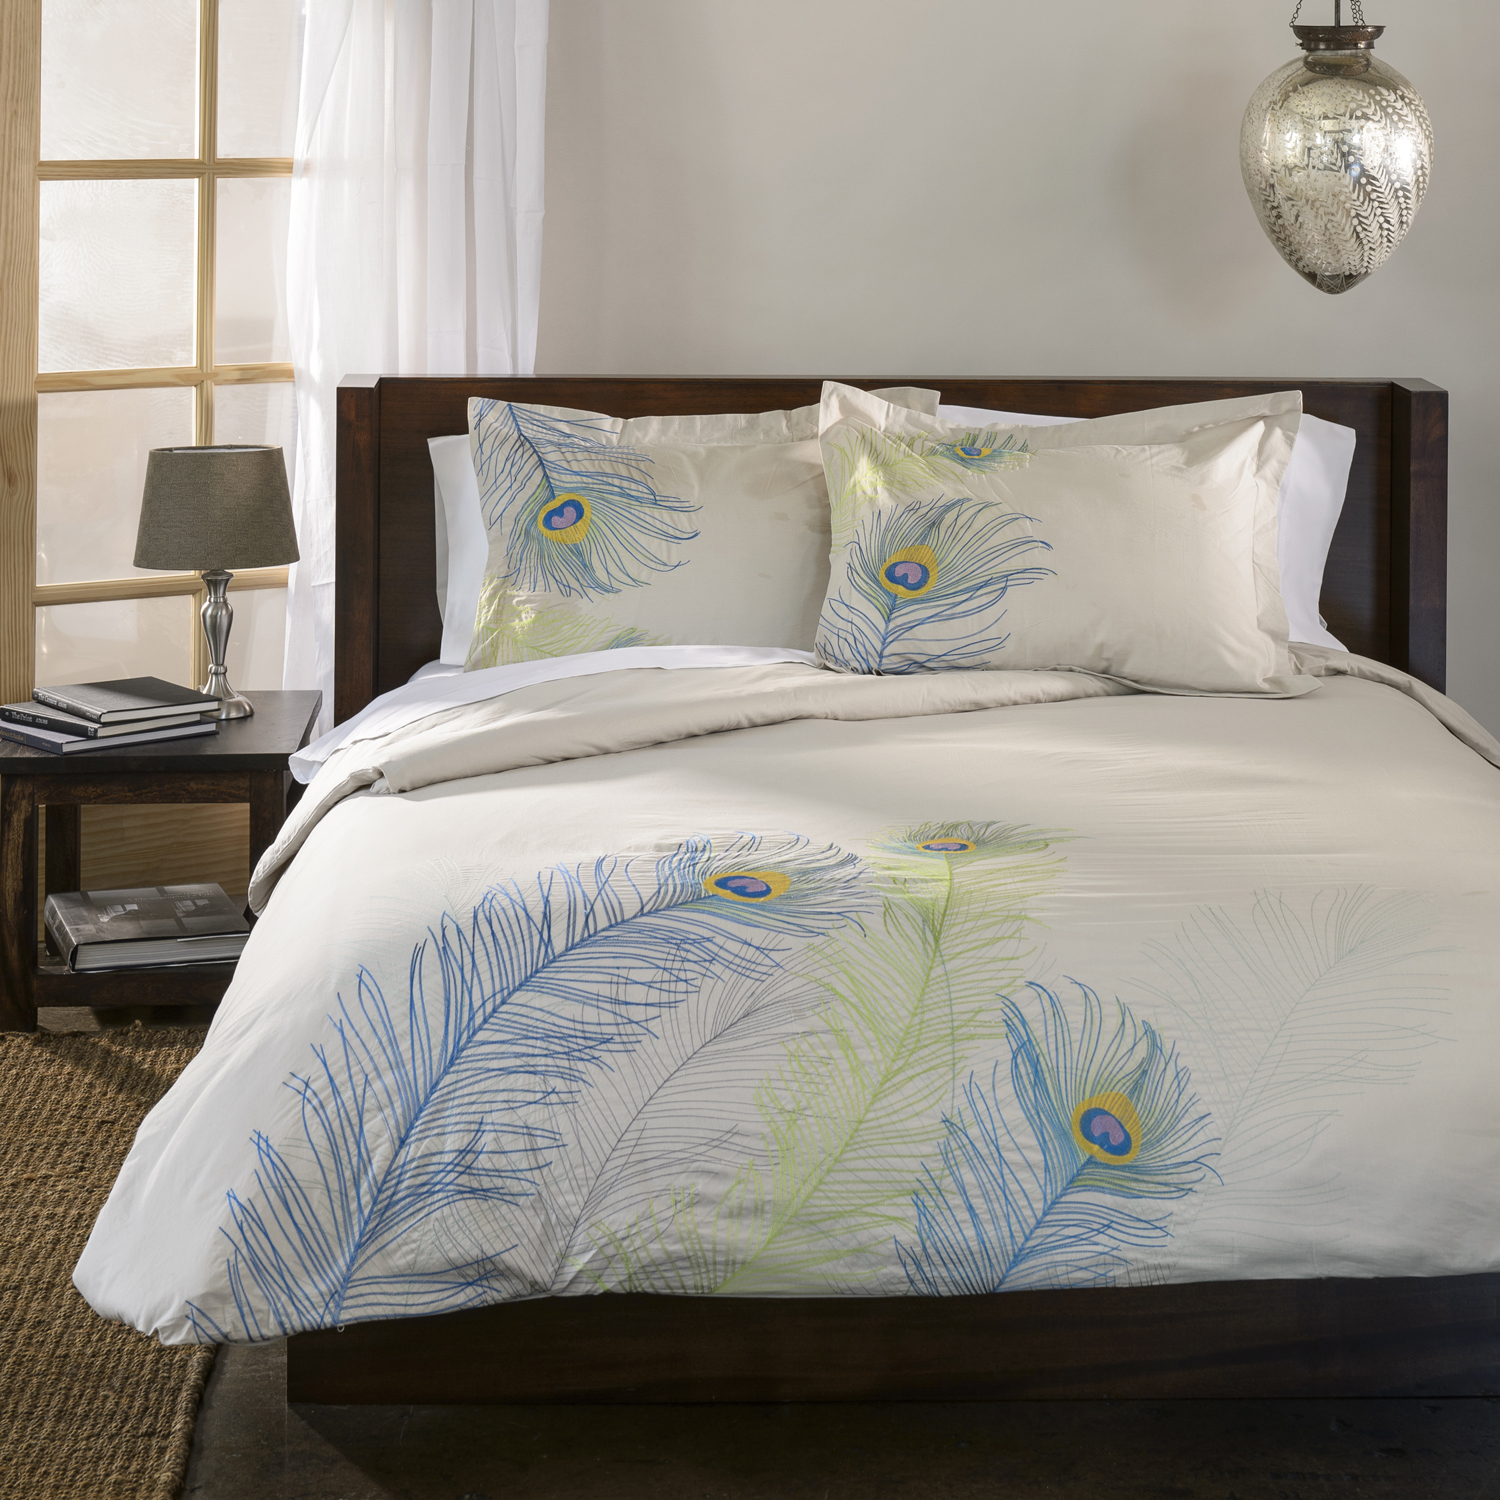 Peacock bedroom set - Duvet Cover Set With Pillow Shams Embroidered Feather